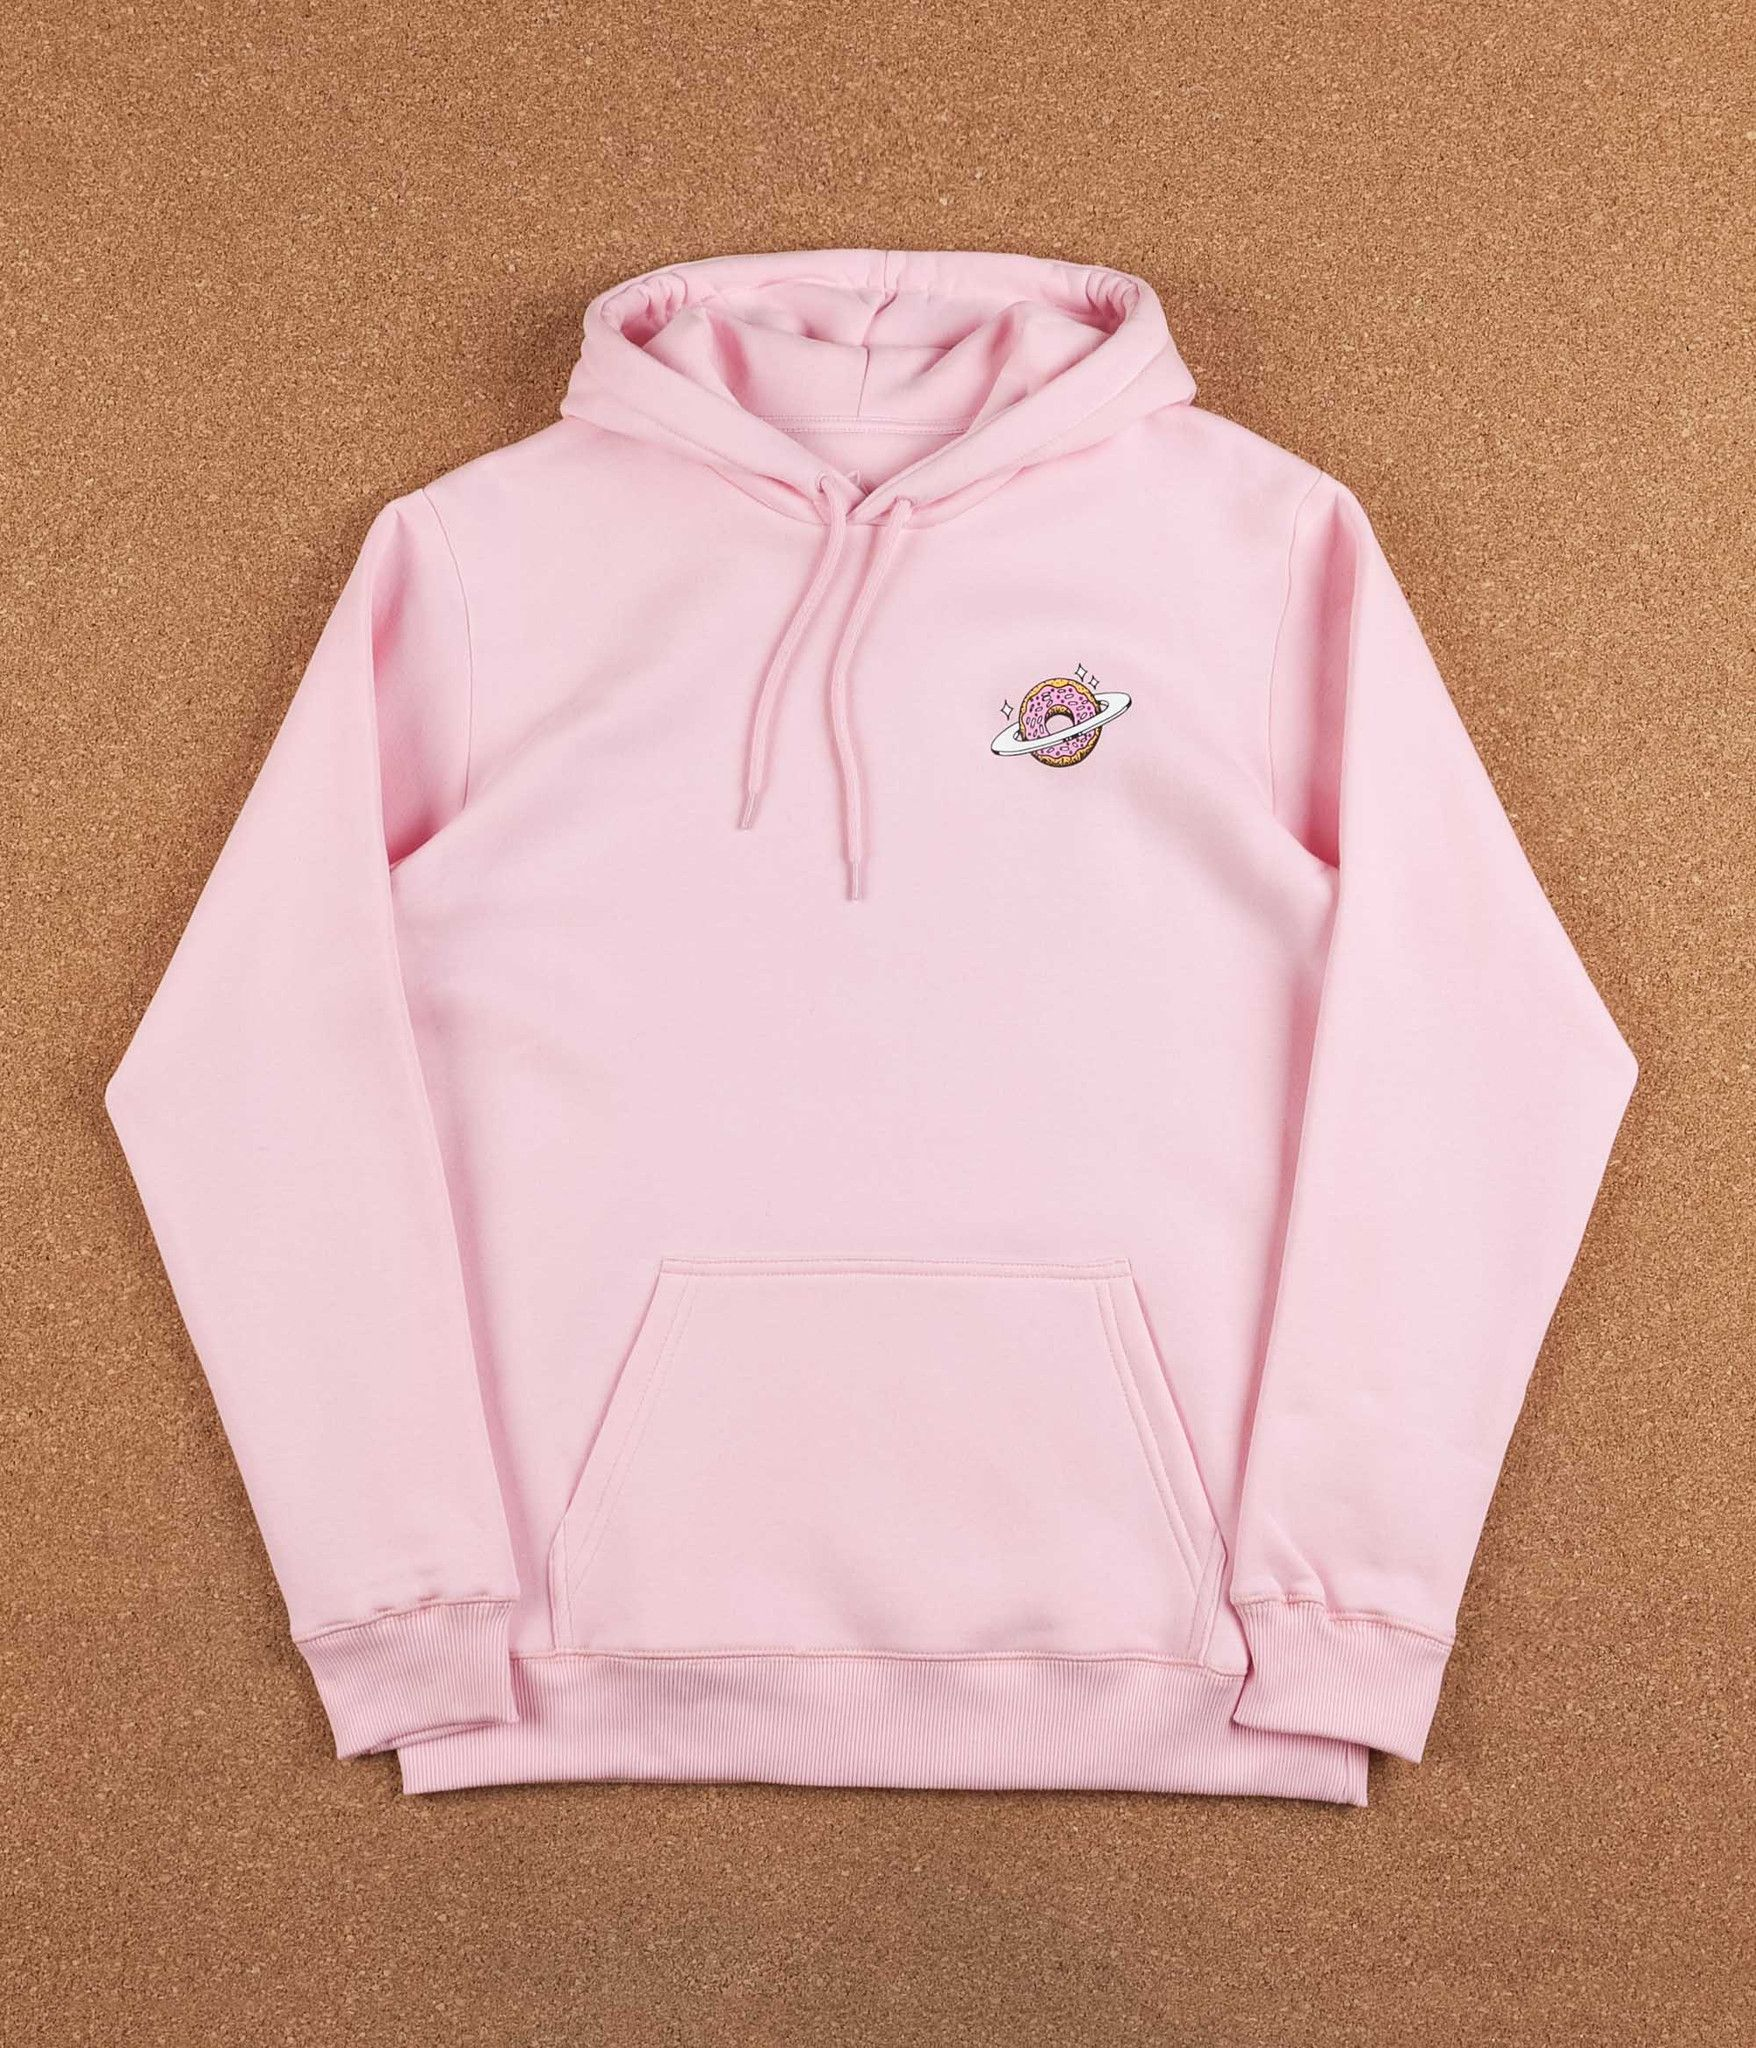 9a8d2eaa662 Skateboard Cafe Planet Donut Hooded Sweatshirt - Pink